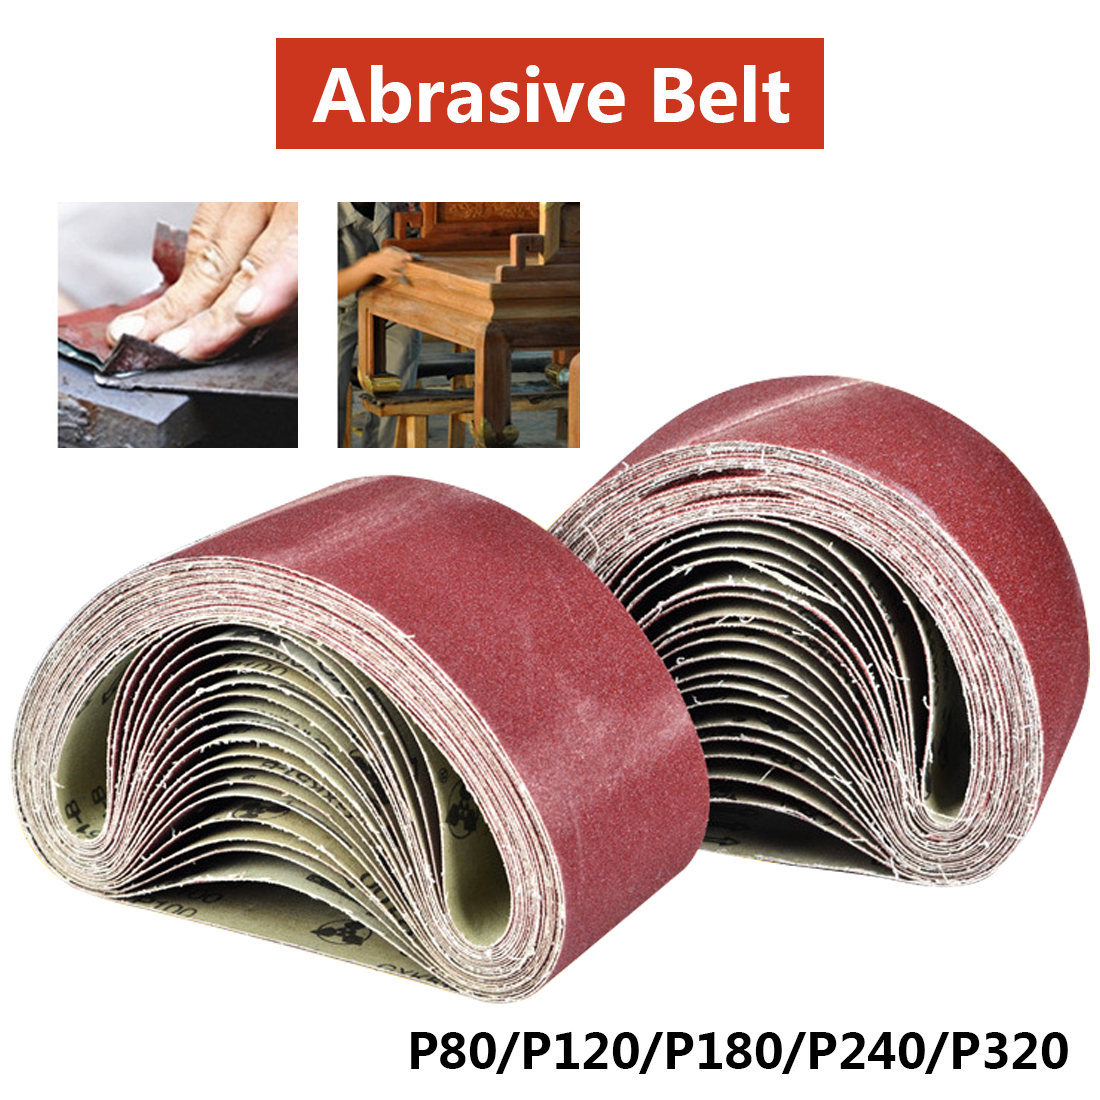 533x75mm Sanding Belts 80-320 Grits Sandpaper Abrasive Bands For Sander Power Rotary Tools Dremel Accessories Abrasive Tool